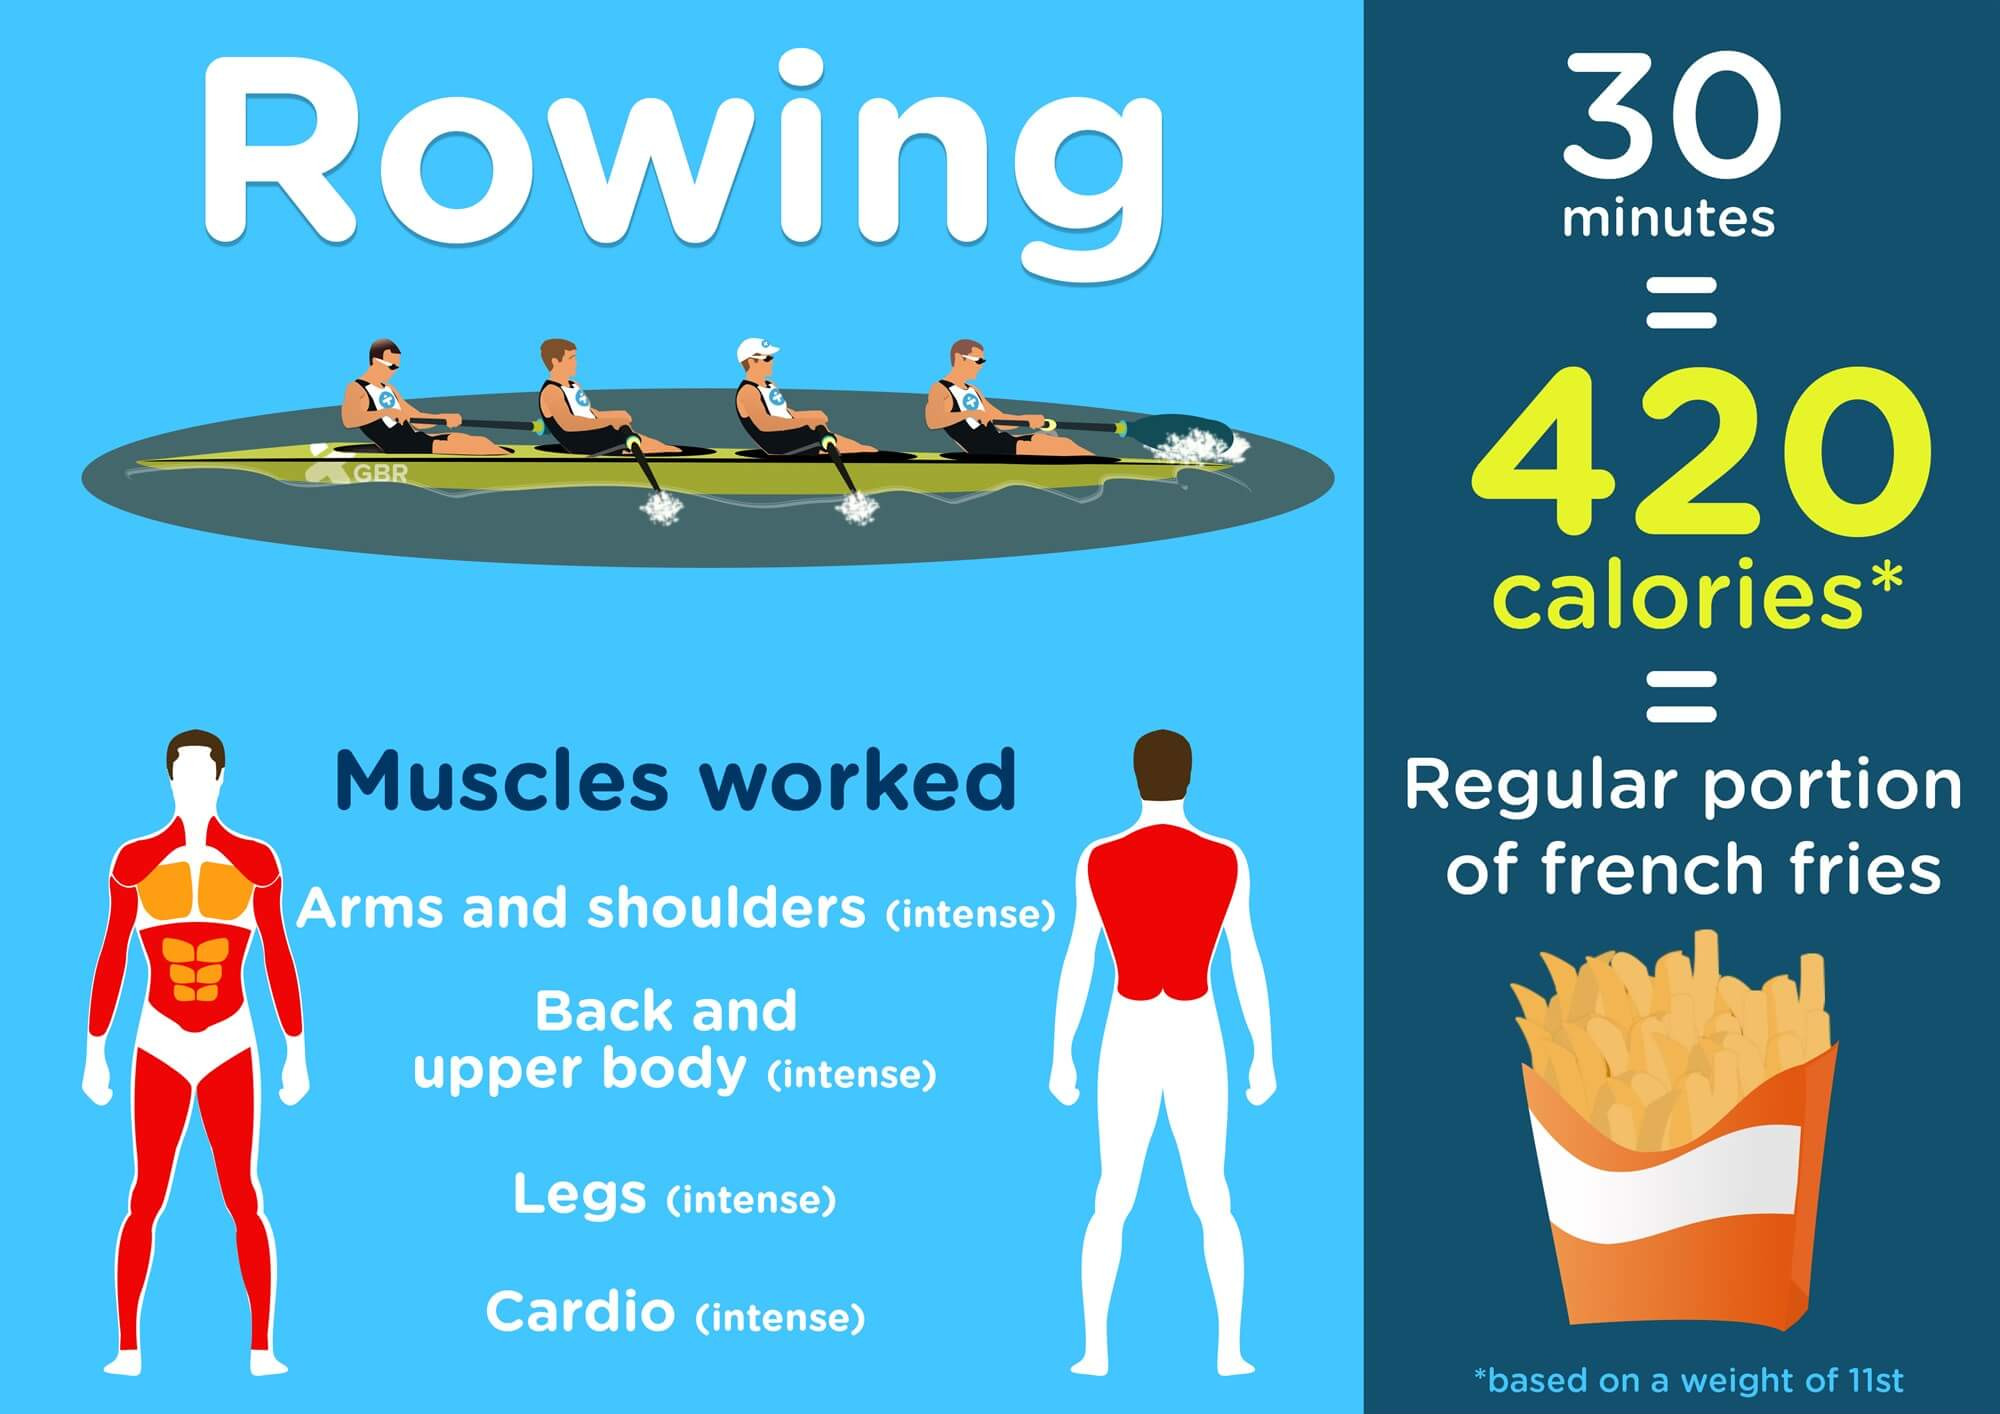 02_Rowing _0.7(1)